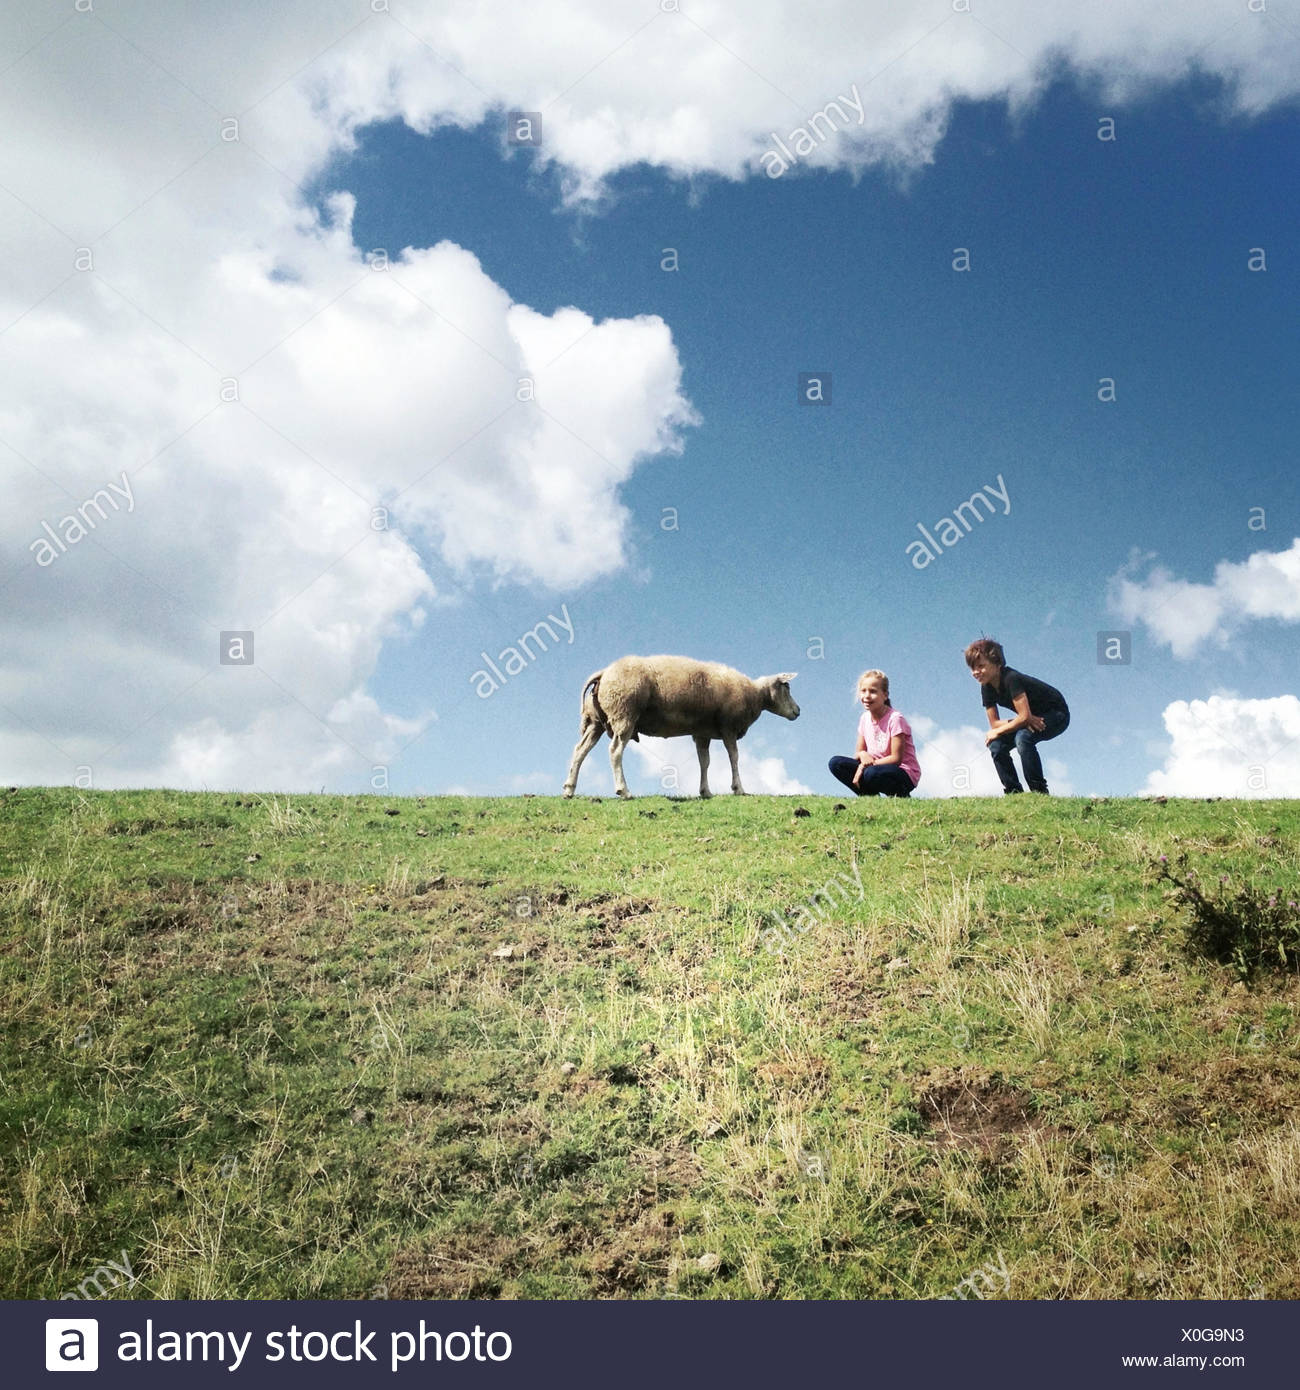 Two children with sheep - Stock Image